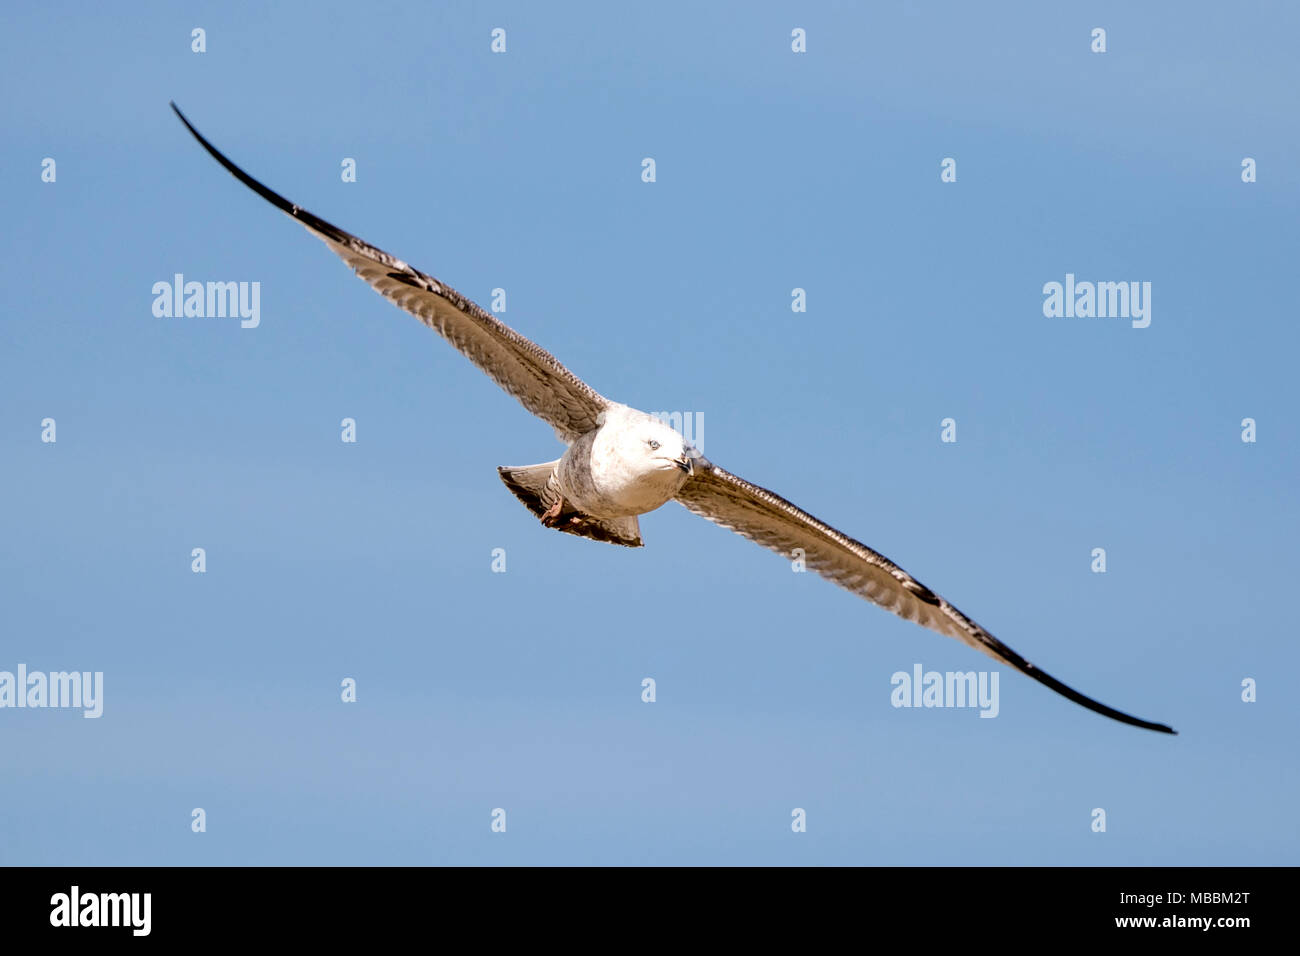 nature wildlife gull bird sea gull seagull seabirds black headed seaside seagulls coastline waterfowl shorebird coast gulls fly shorebirds gulls birds - Stock Image